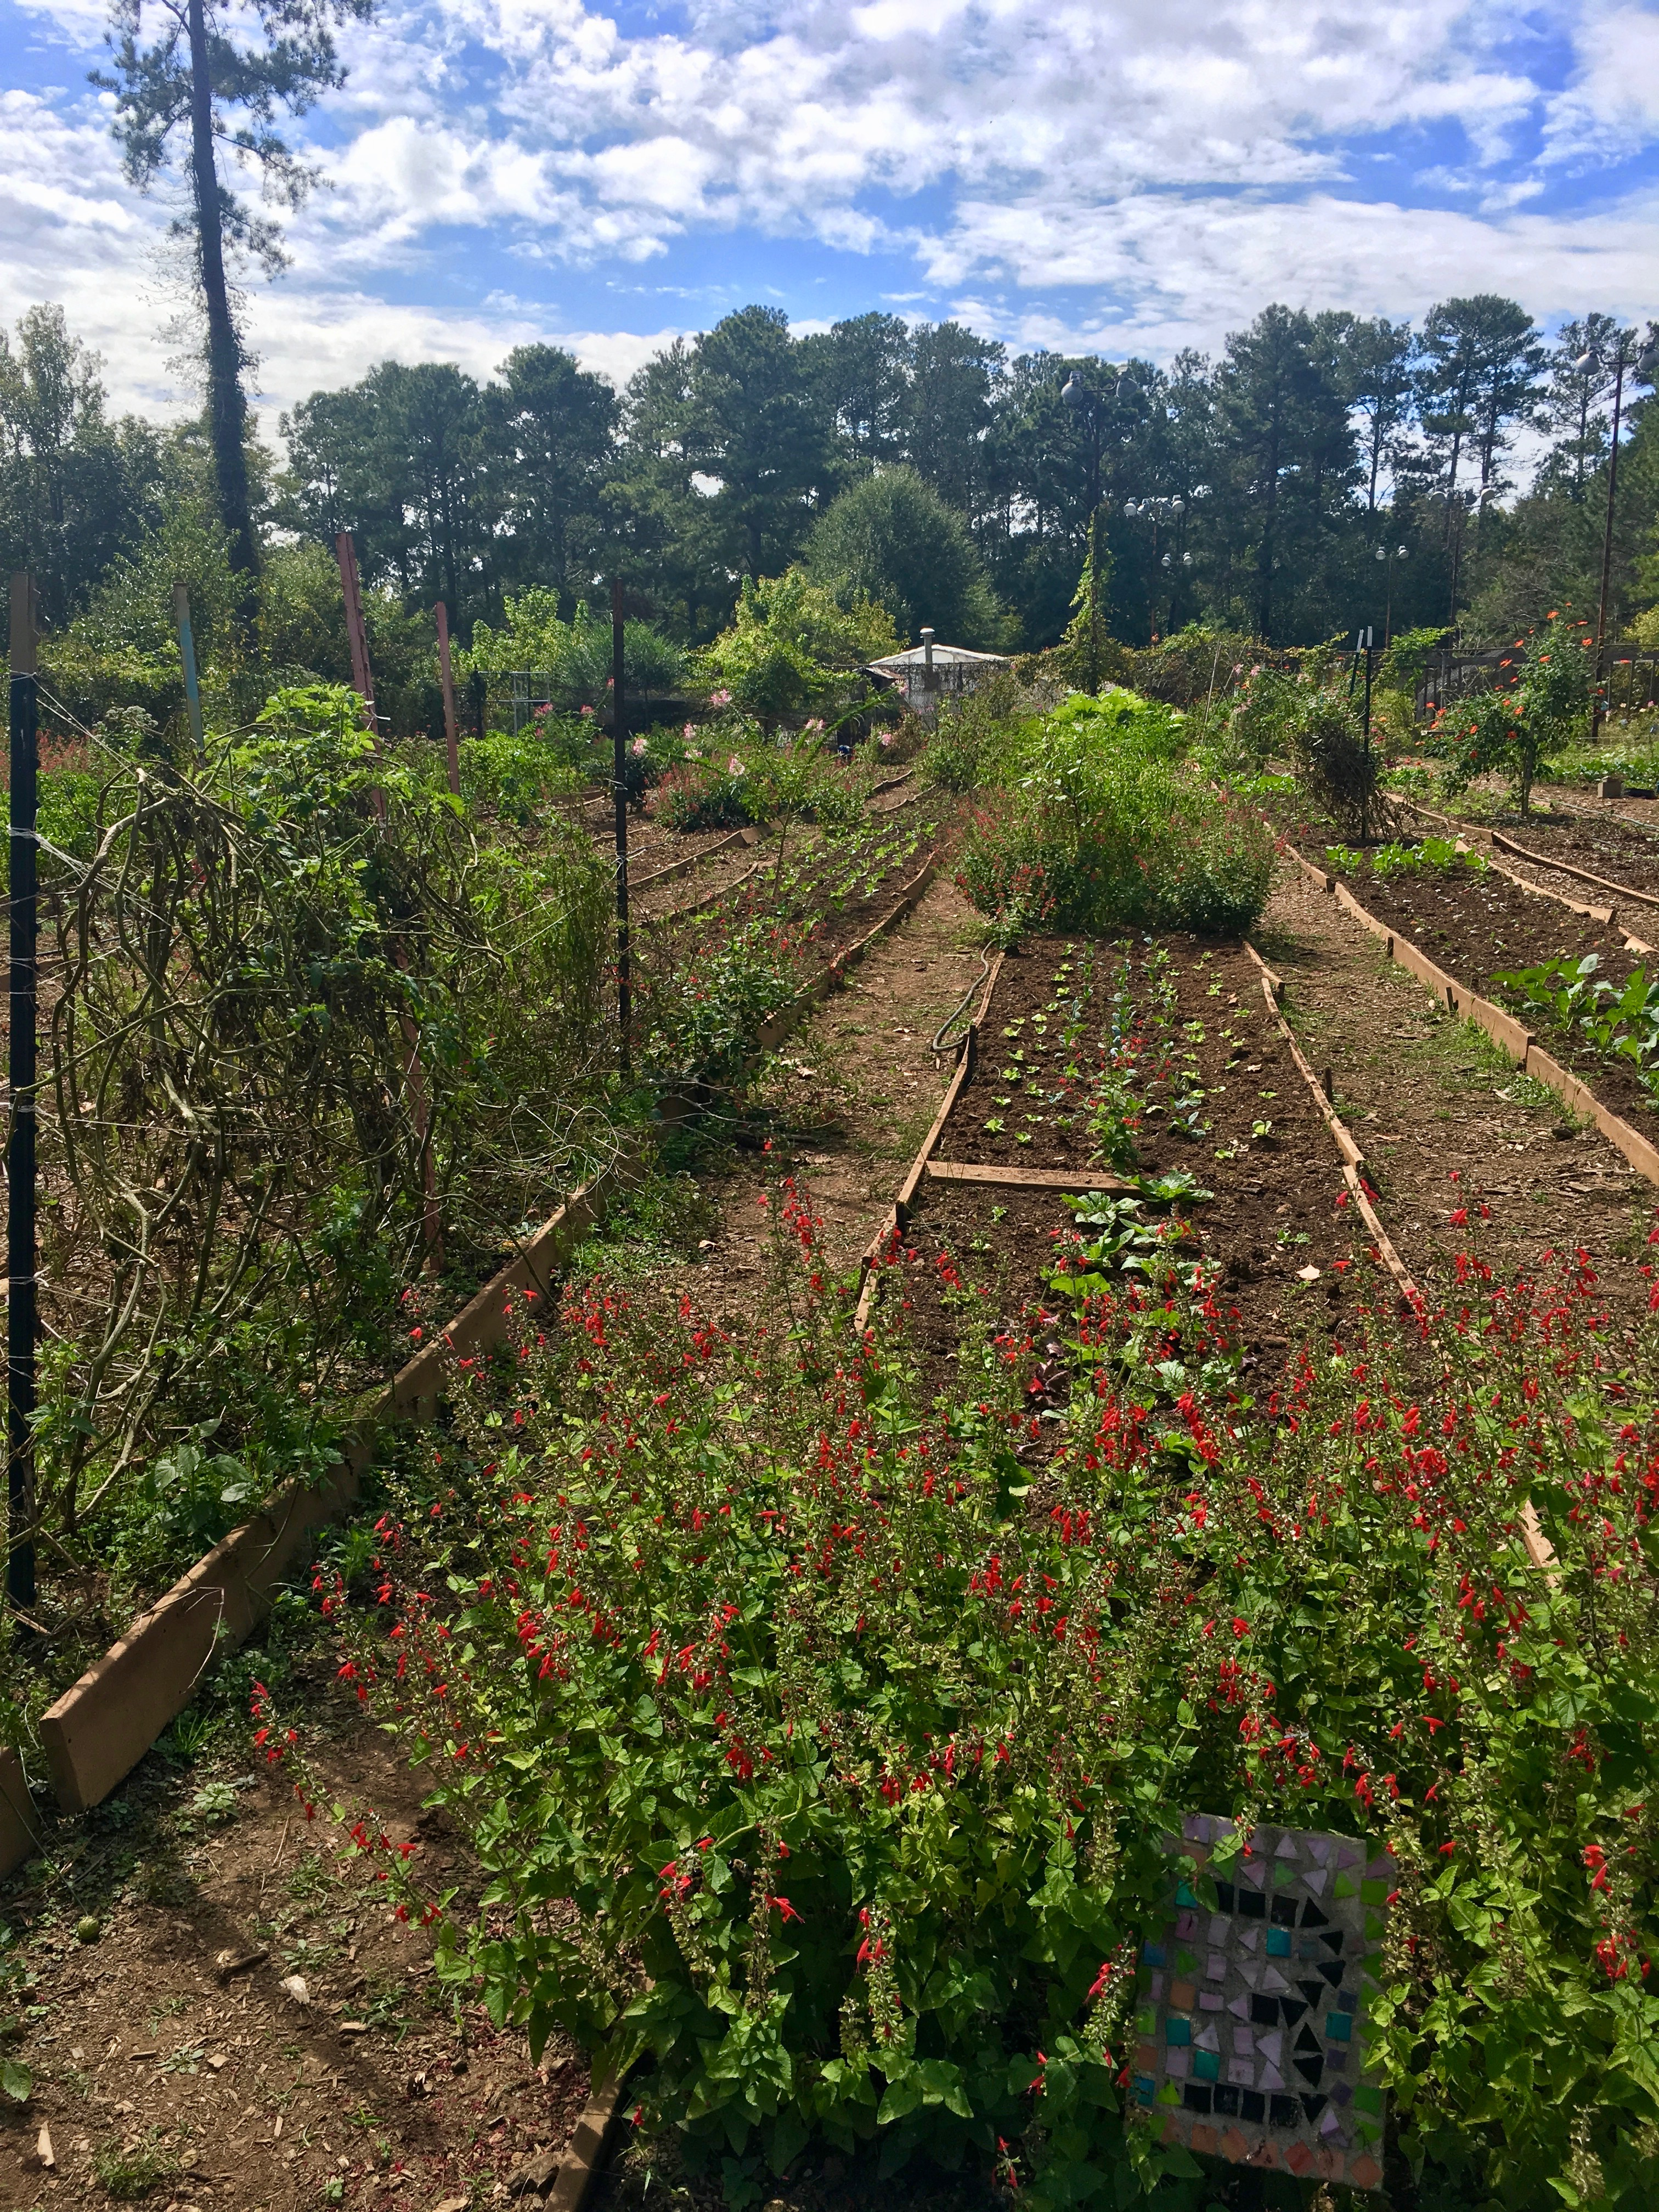 The Unity Garden at the Chattahoochee Nature Center (Roswell, GA)